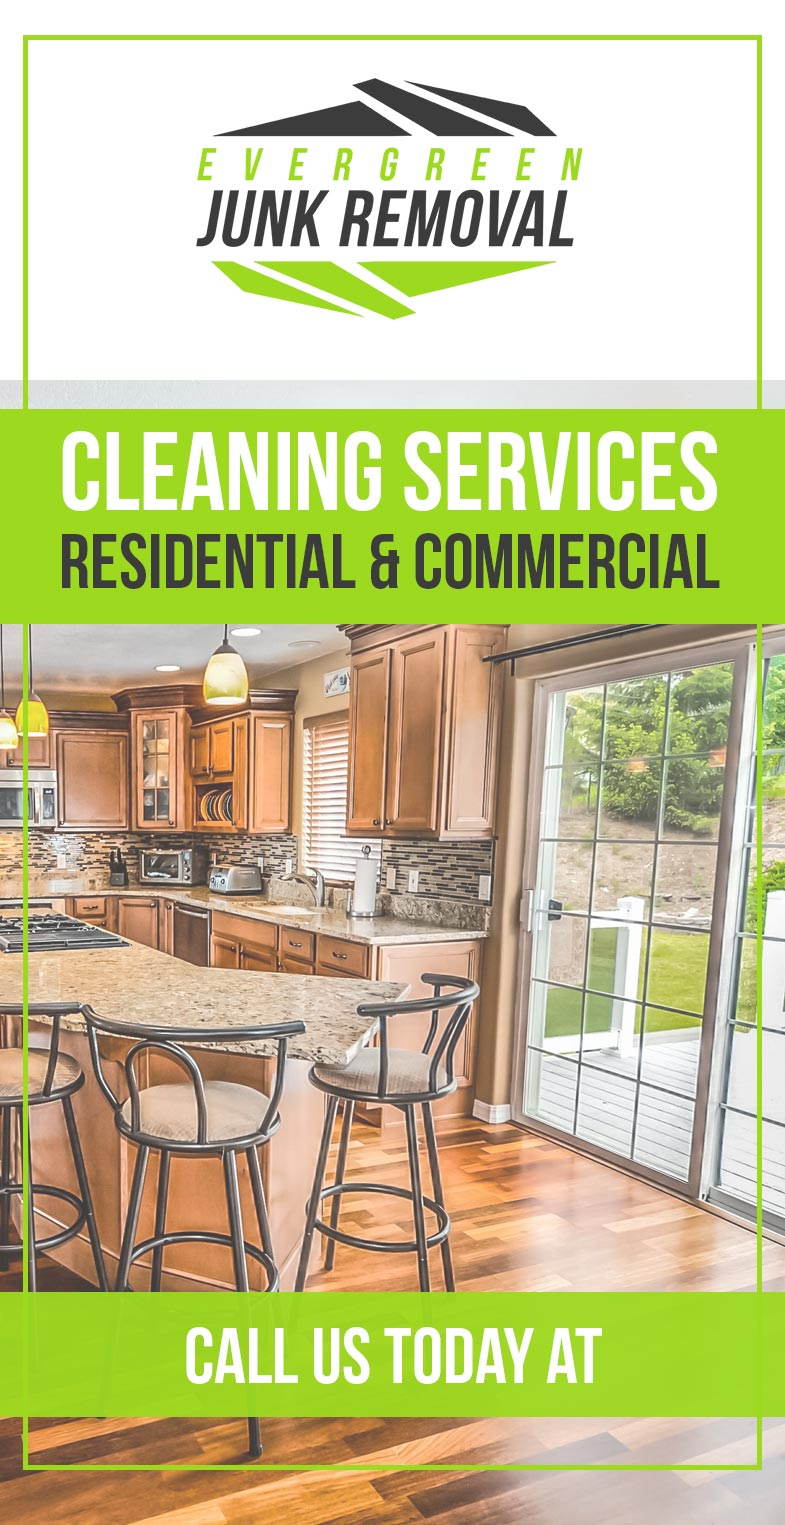 Sea Ranch Lakes Maid Services